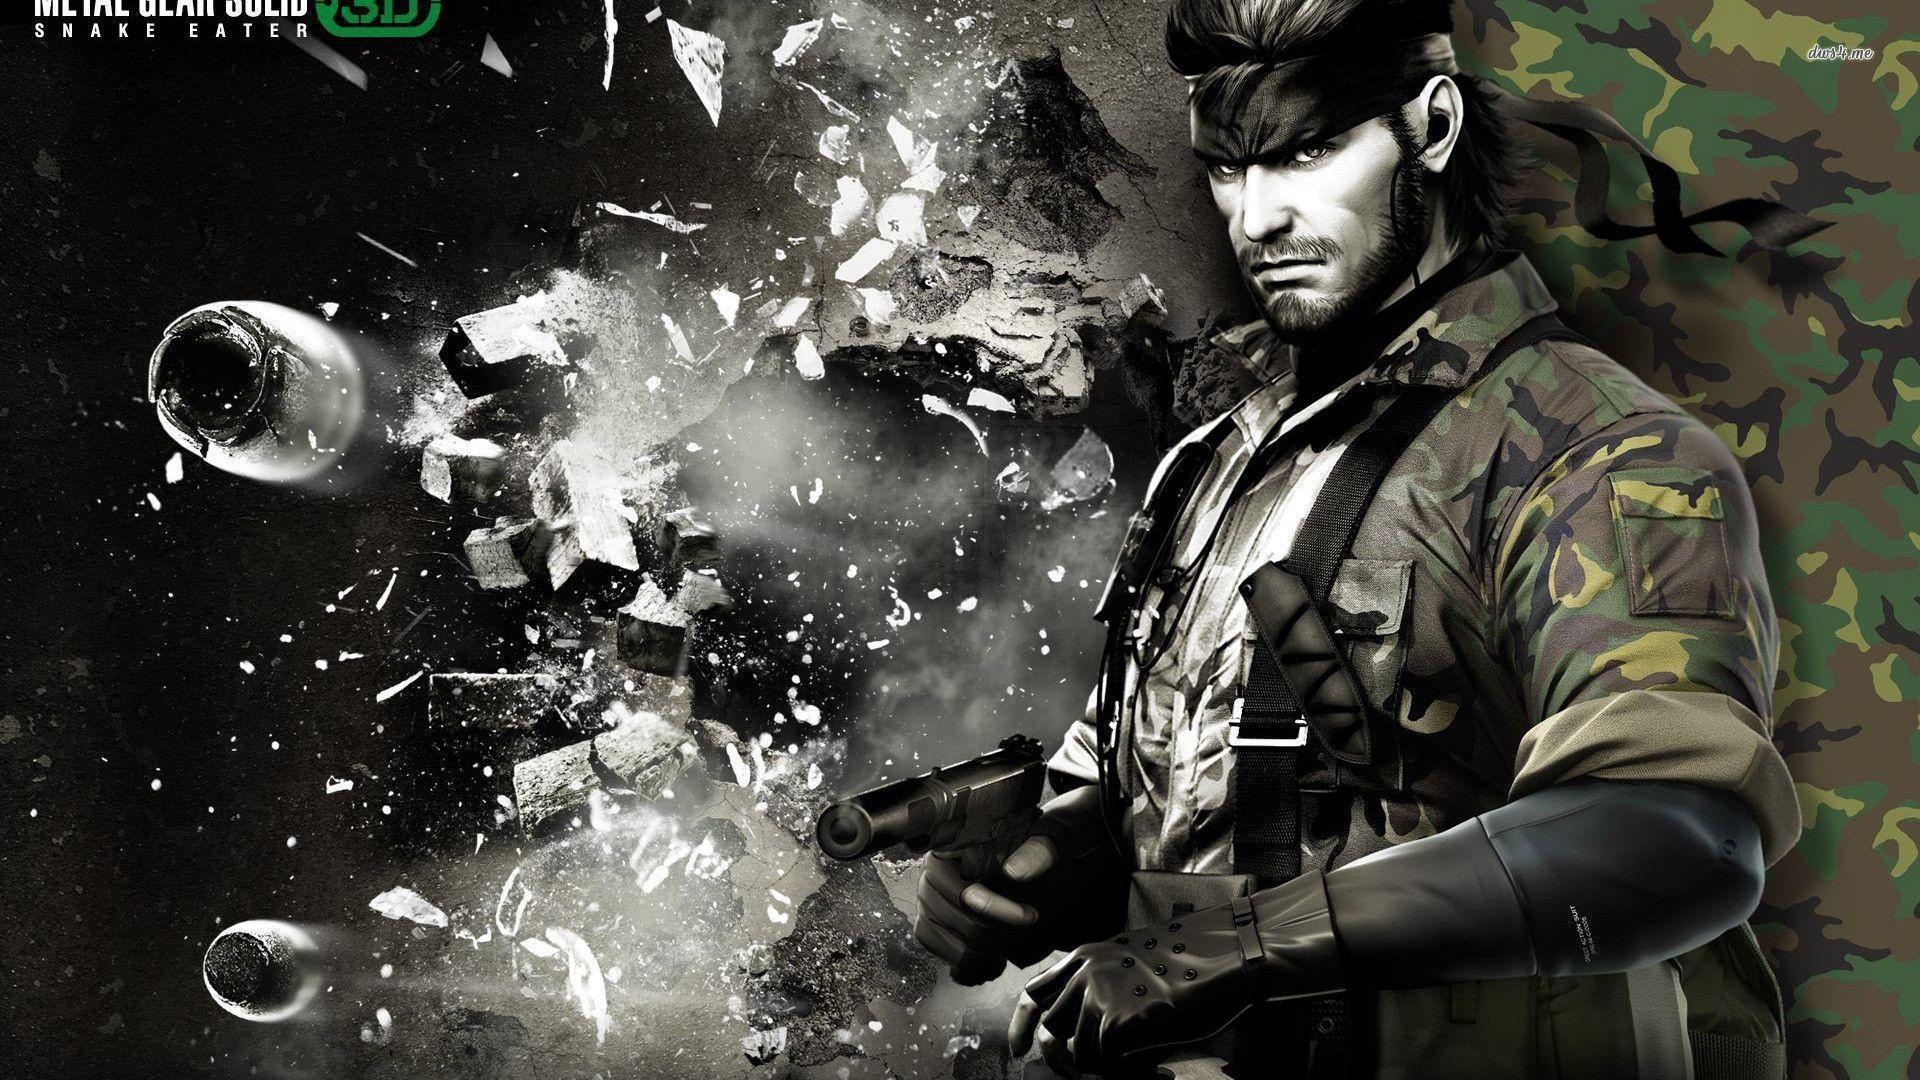 metal gear hd wallpapers - photo #5